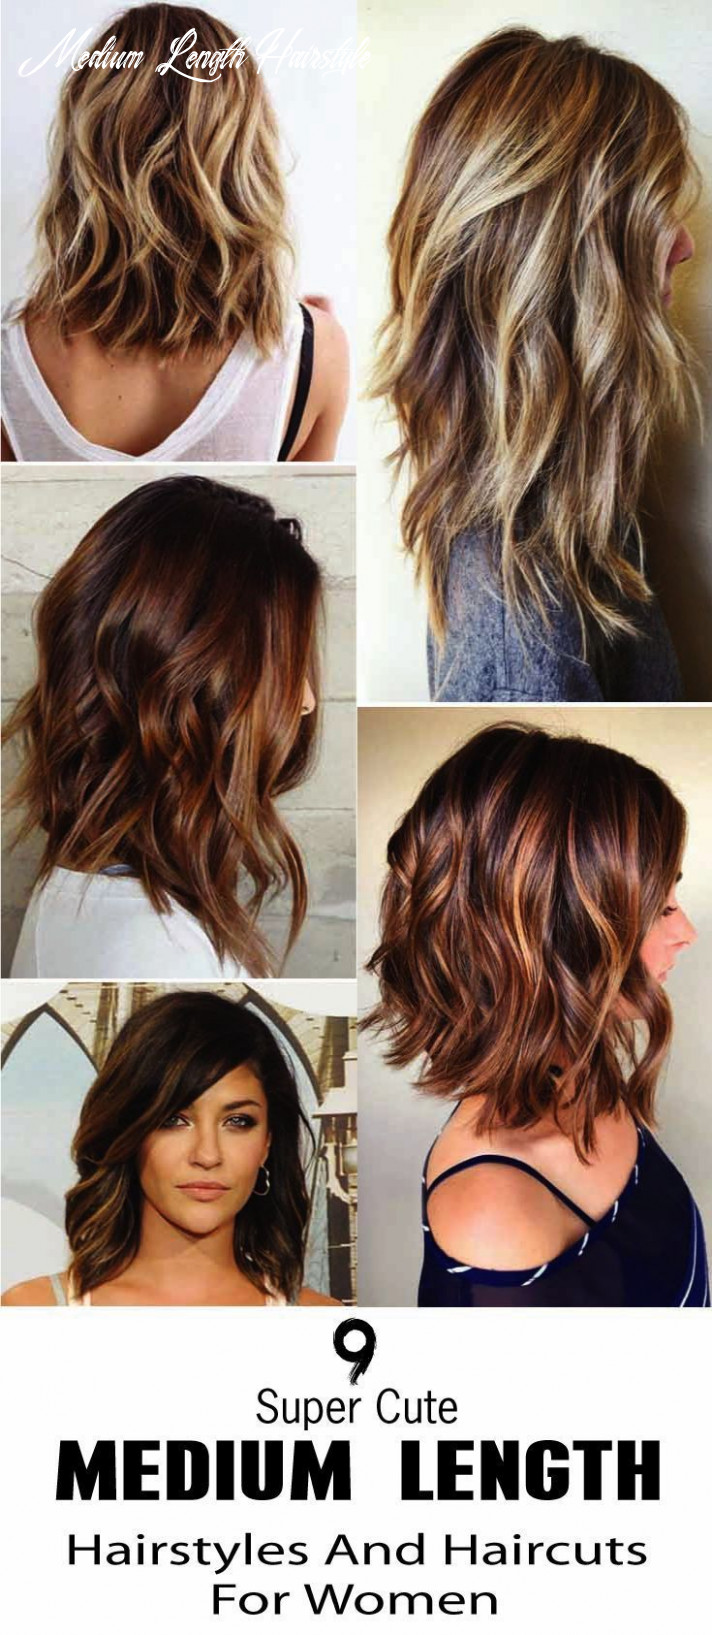 Pin on hairstyle medium length hairstyle